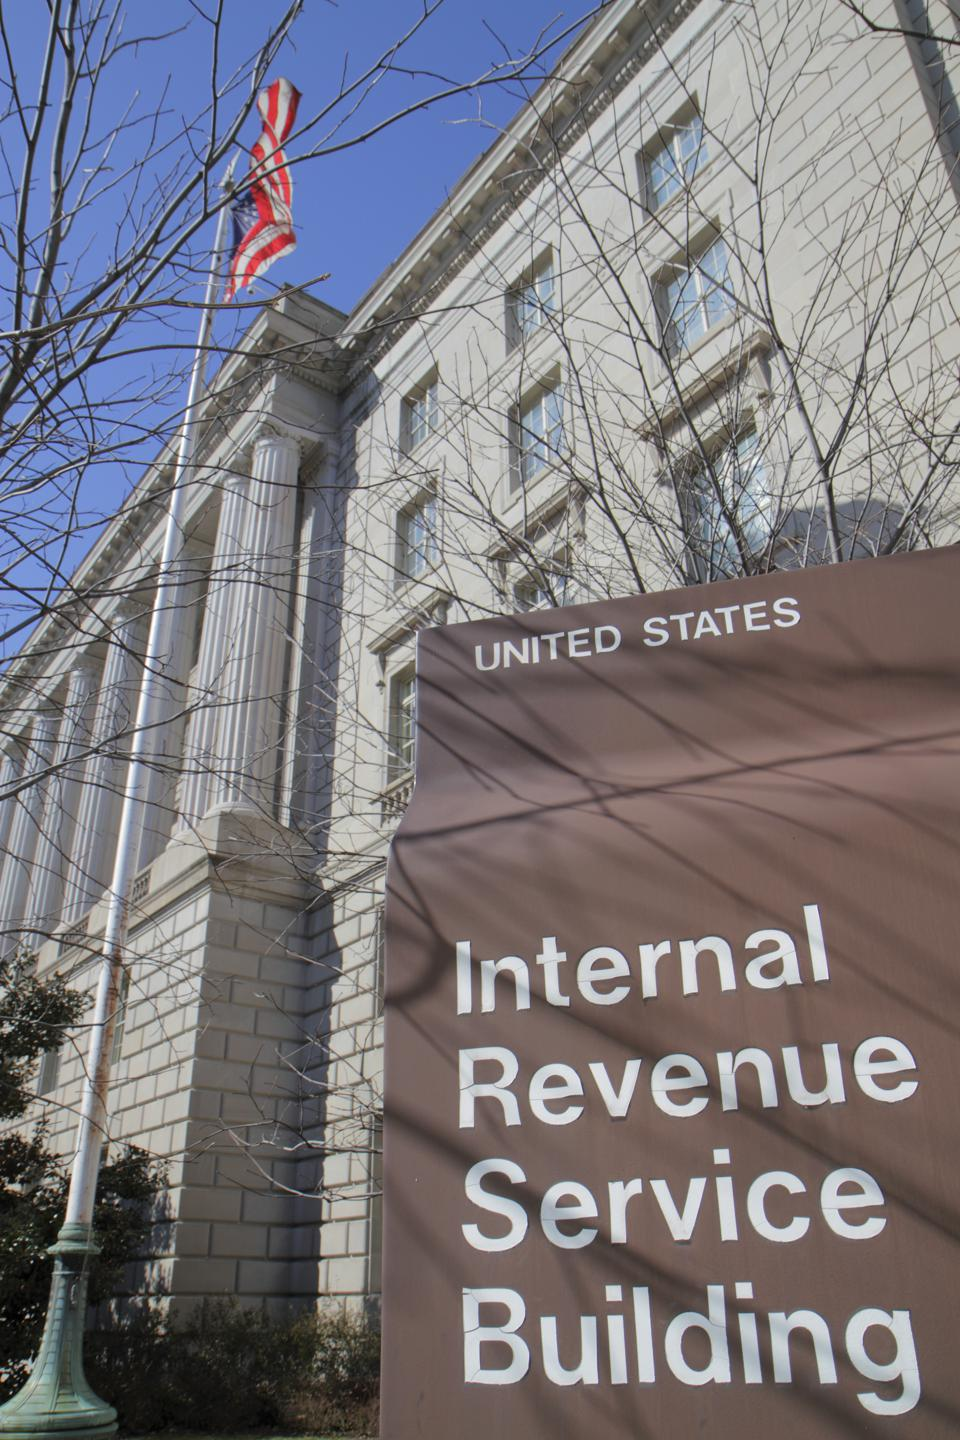 Internal Revenue Service sign outside a government office building.